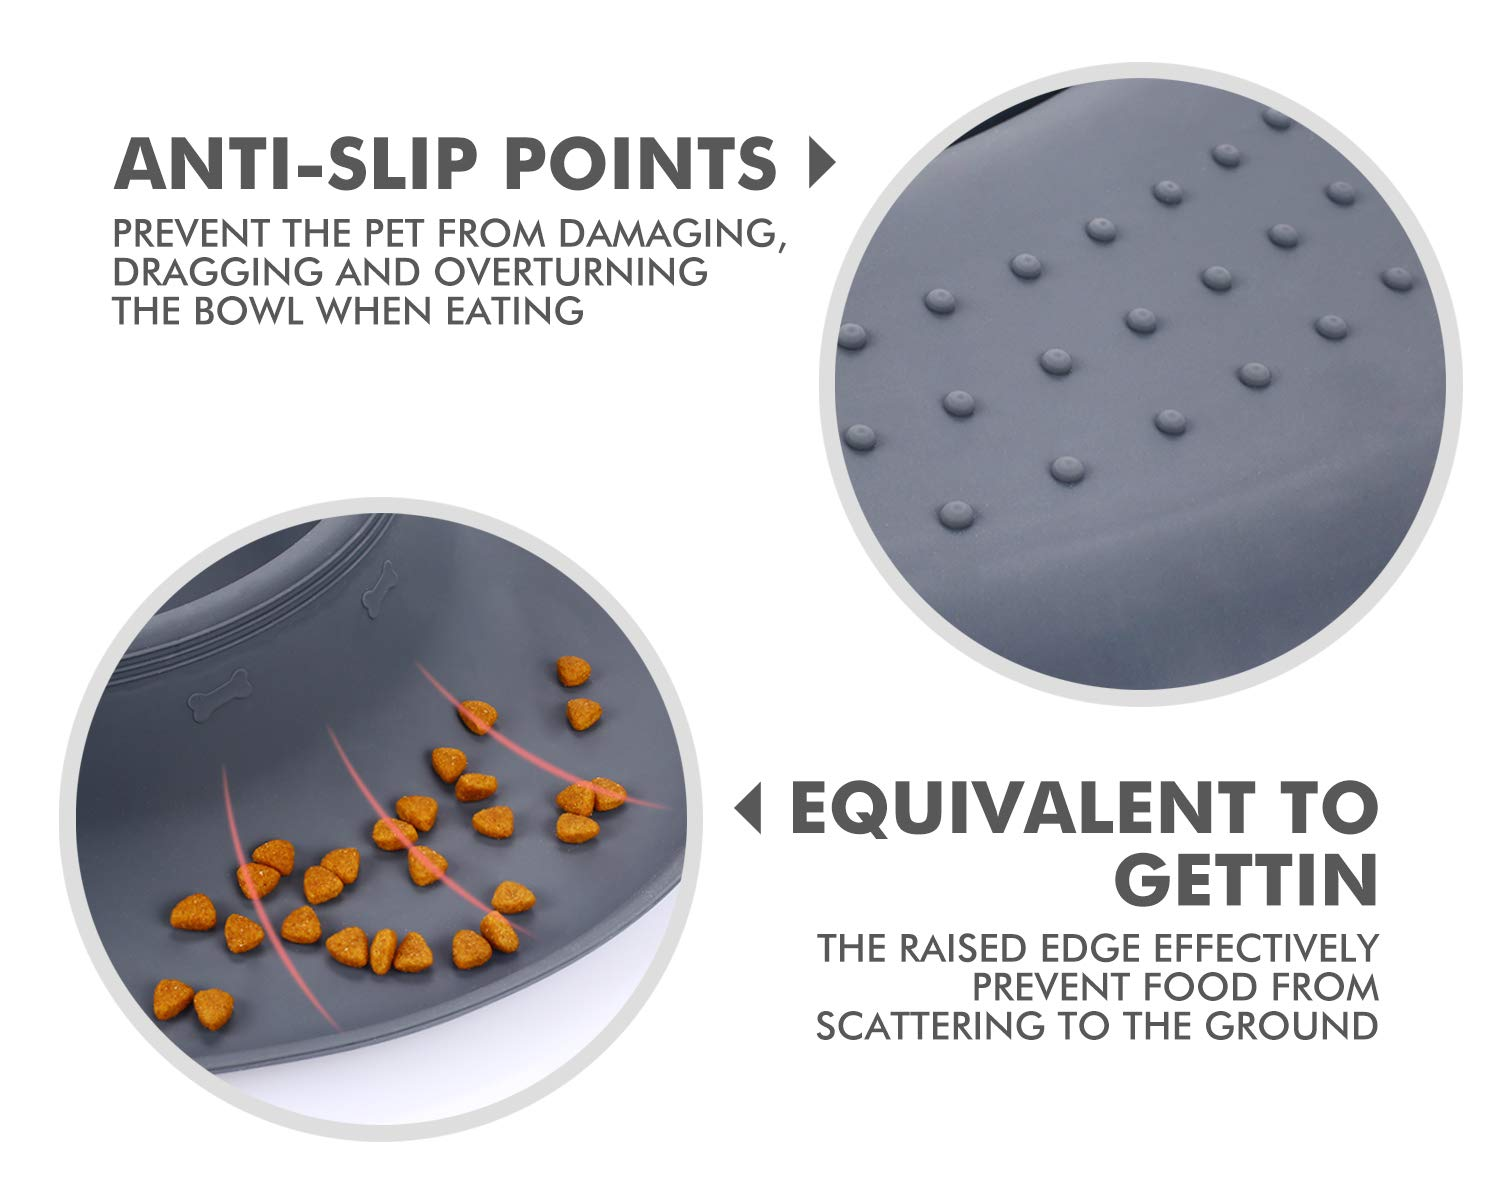 Safe Silicone Interactive Fun Slow Feeders for Dogs Stainless Steel Bowls Non Spill Mats Tray Great for Small Medium Dogs Cats Slow Feeding Pecute 3-in-1 Slow Eating Dog Bowls with Non Slip Mat